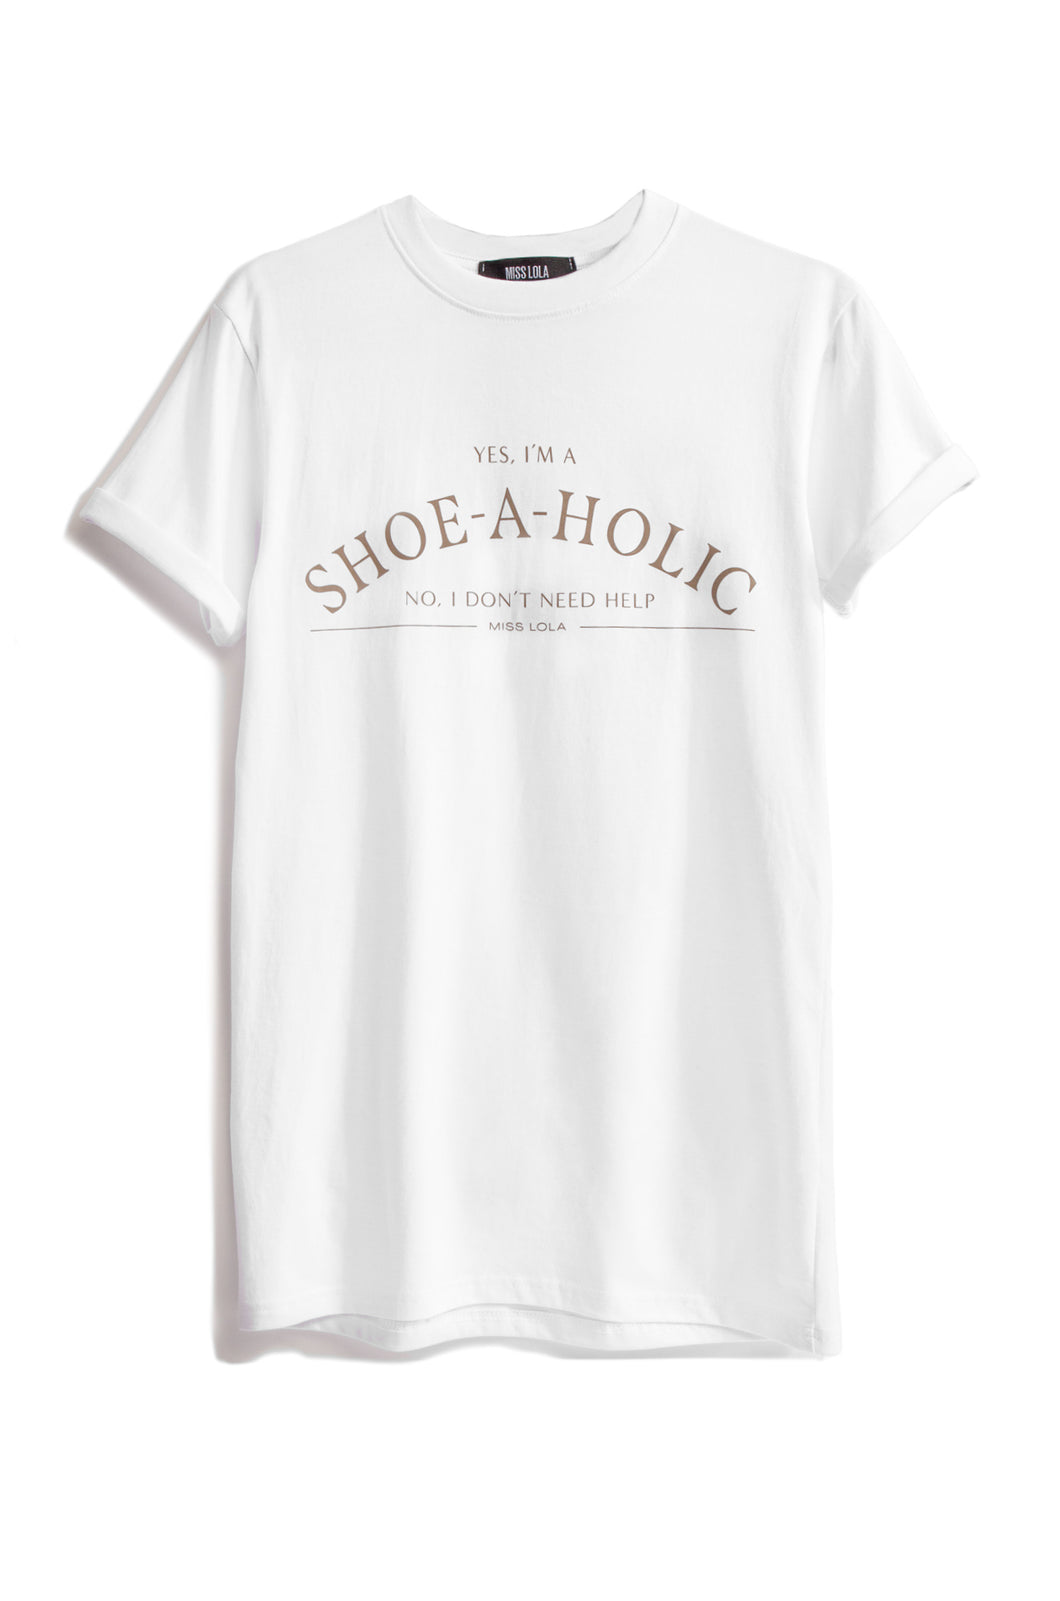 Shoeaholic Tee - White/Nude